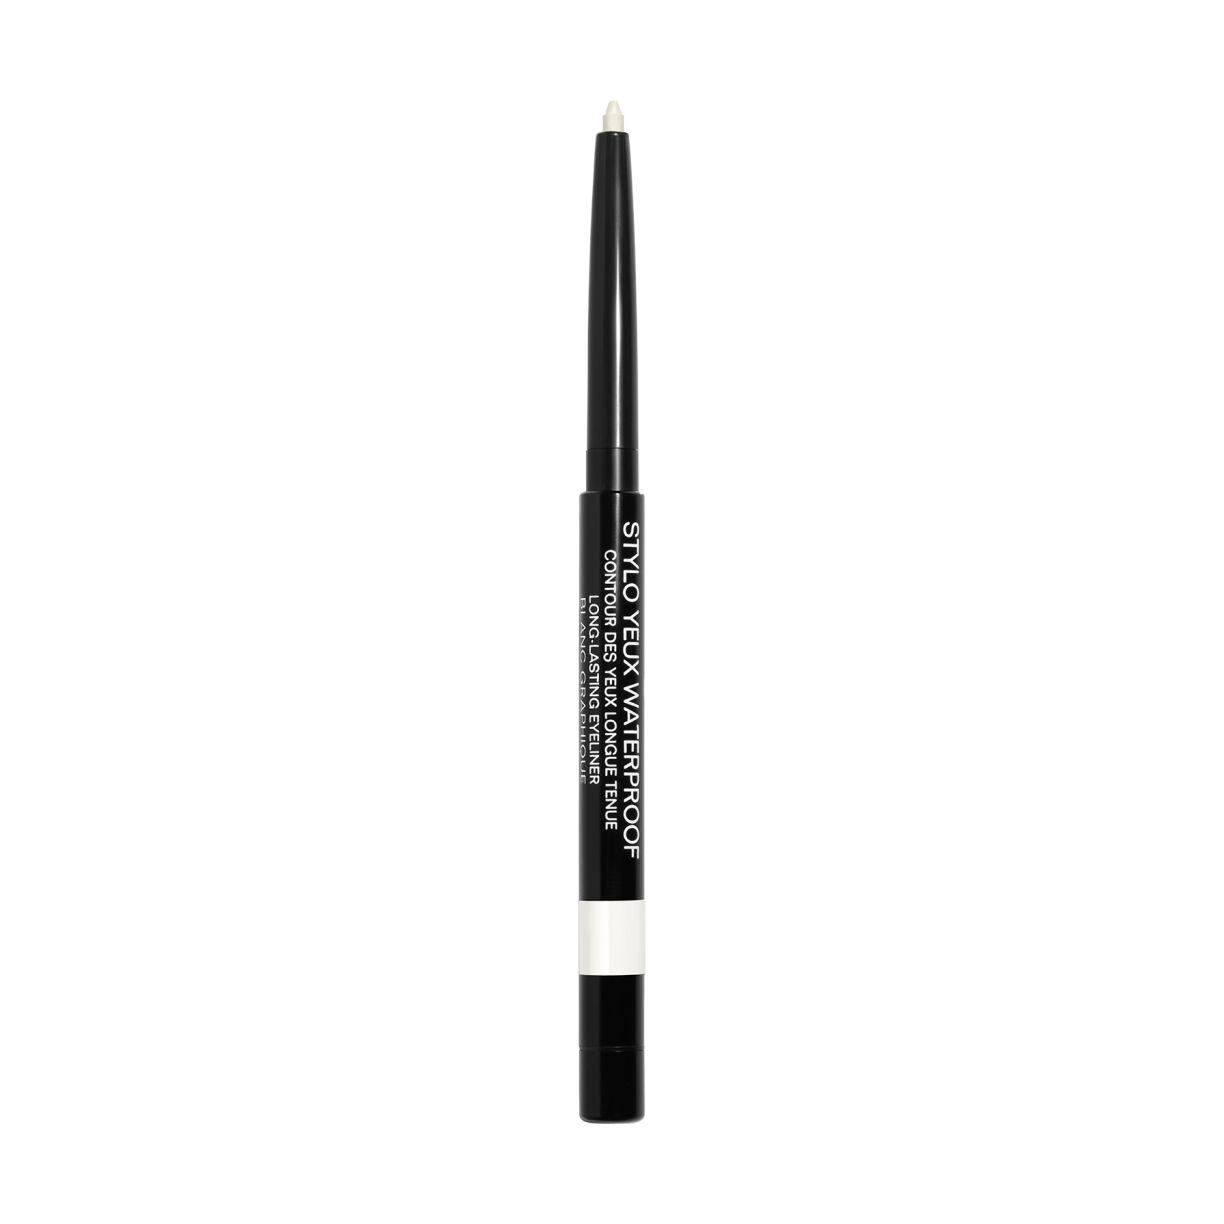 STYLO YEUX WATERPROOF 防水眼線筆 949 - BLANC GRAPHIQUE